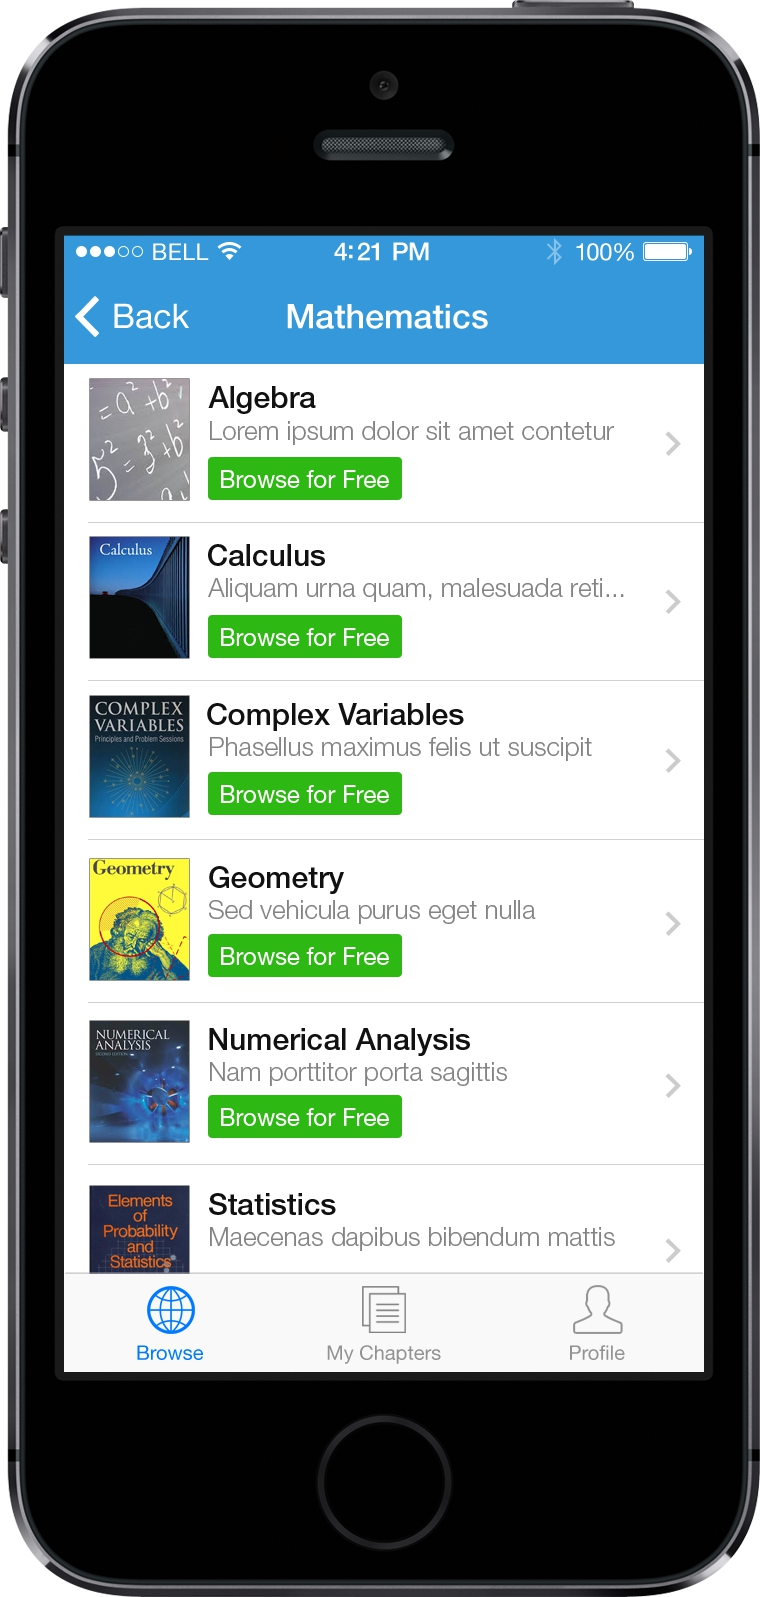 TheChapterApp App Screen - 4 | Purchasing Individual Chapters In a Book Mobile App